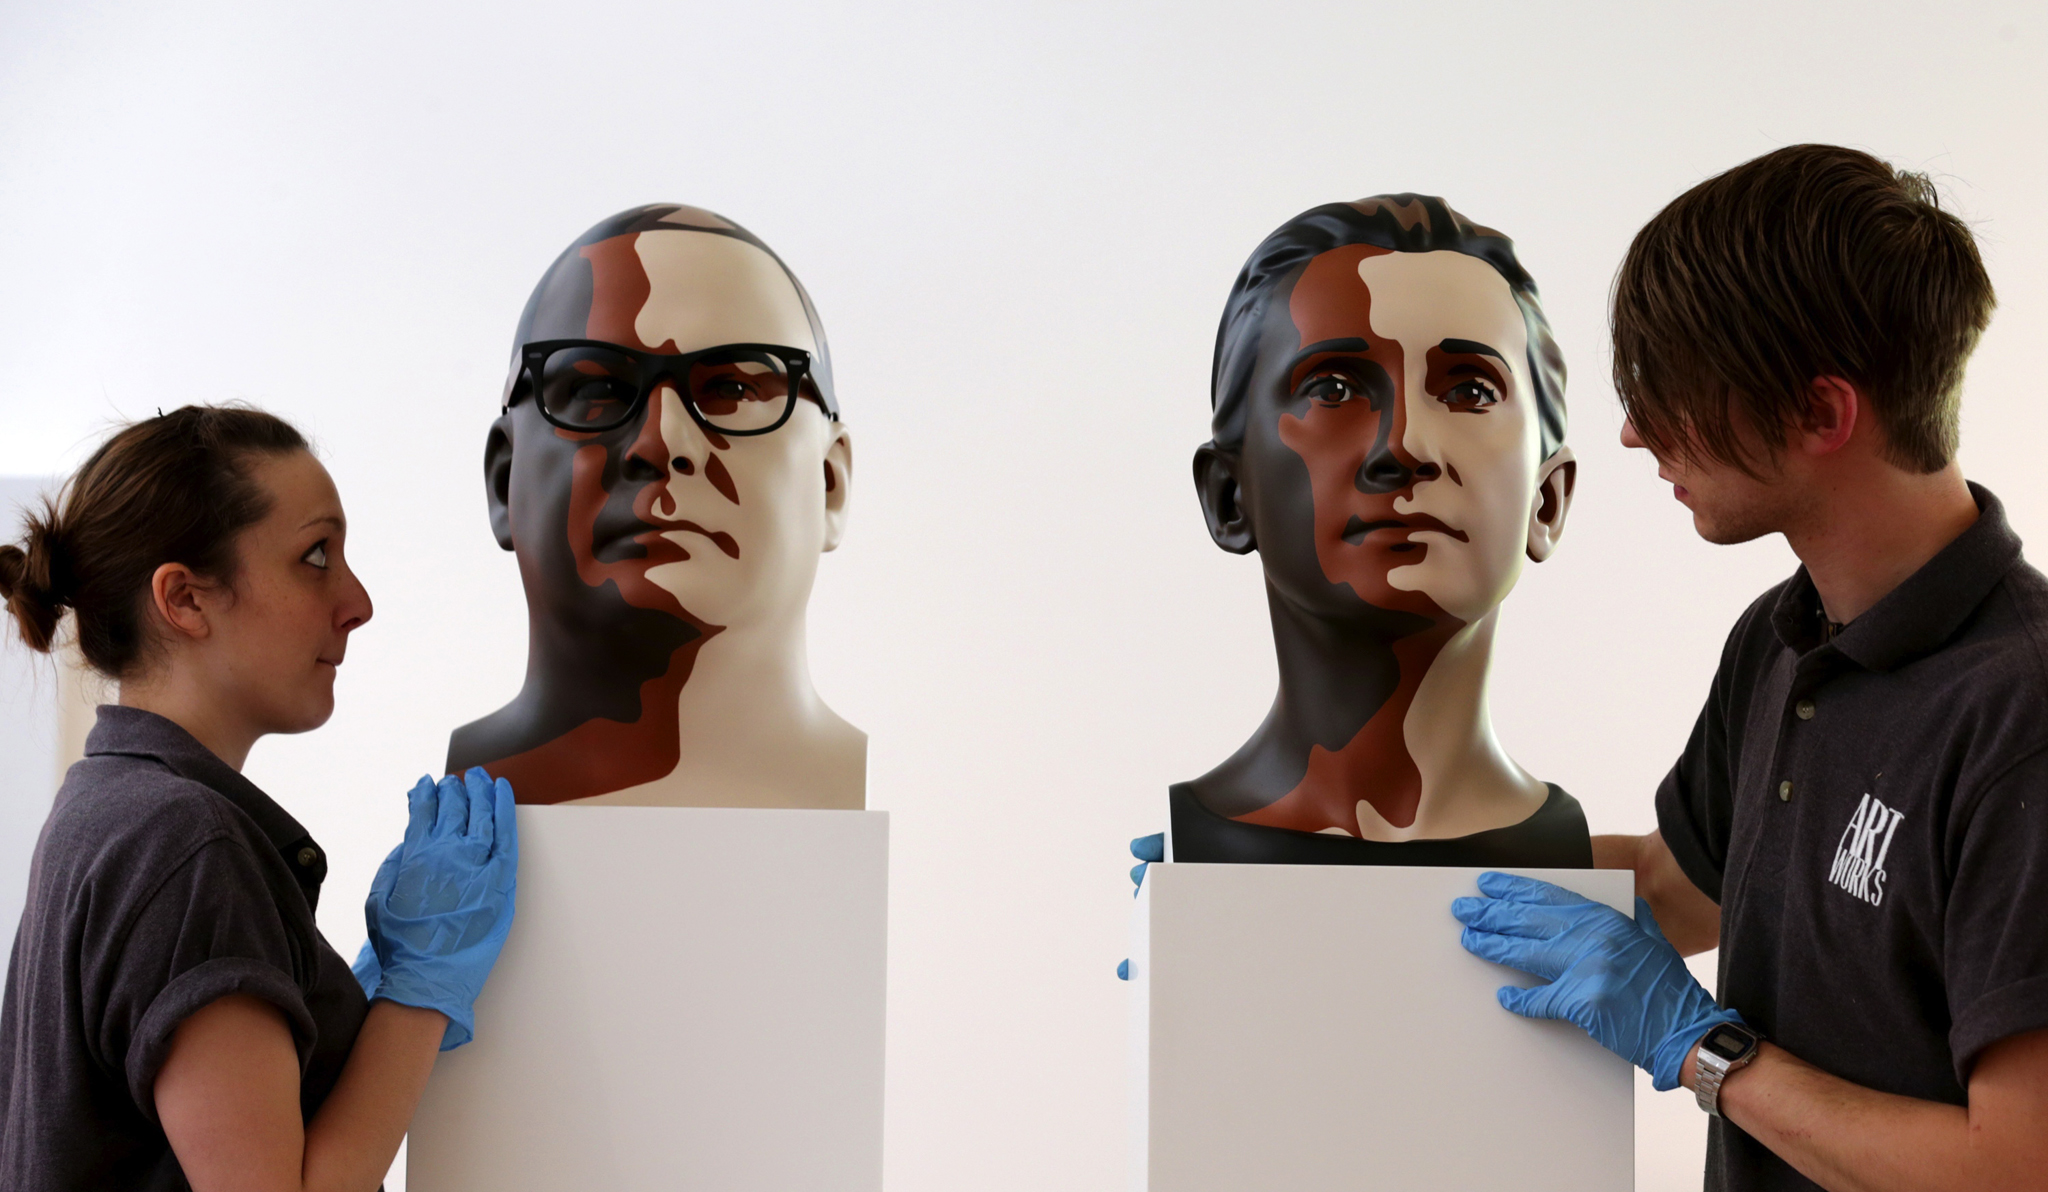 Artist Julian Opie Exhibition Opens In Bath...BATH, ENGLAND - MAY 15:  Art technicians Rachel Falber and Sam Roberts from Art Works position two three-dimensional sculptures, 'Reed 1' and 'Delphine 2' by the artist Julian Opie onto plinths inside the Holburne Museum on May 15, 2014 in Bath, England. Considered to be one of the UK's most important and successful contemporary artists, the exhibition, 'Julian Opie: Collected Works', opens next Wednesday and runs until September 14. It will be the artists first one person exhibition for over ten years and will bring together his own works, including several previously unseen works, with pieces from his private collection.  (Photo by Matt Cardy/Getty Images)